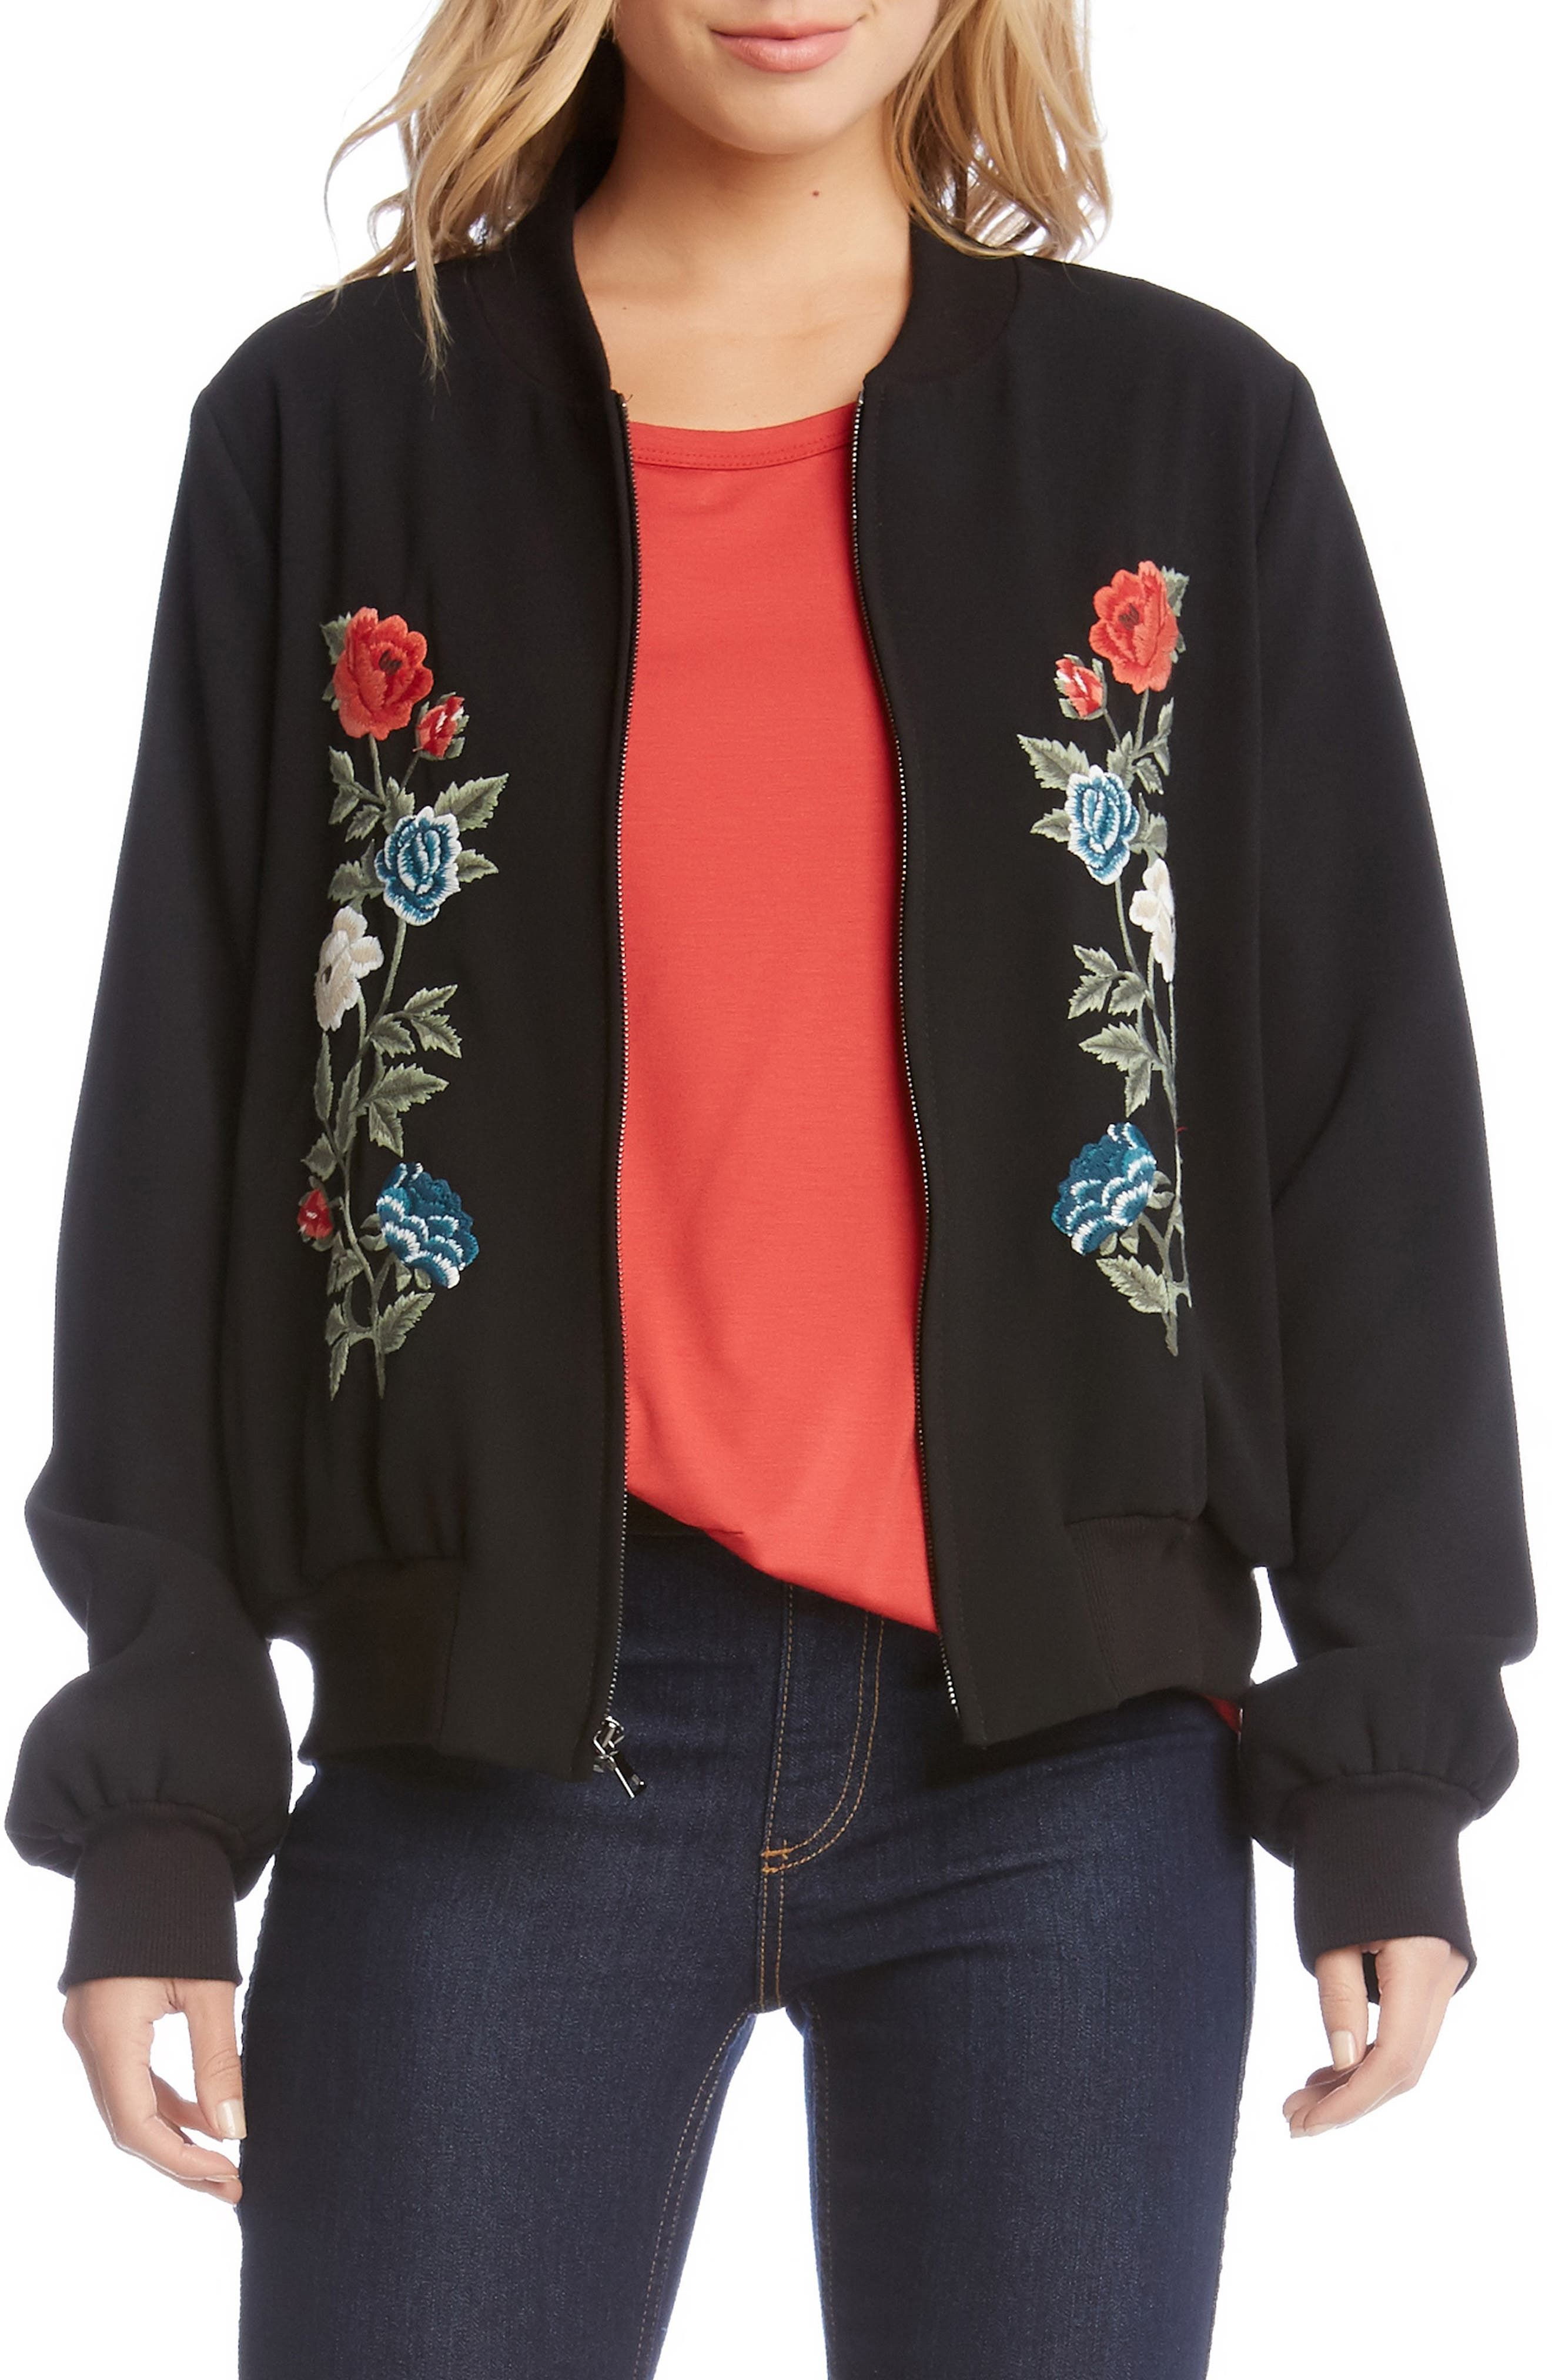 Embroidered Bomber Jacket,                             Main thumbnail 1, color,                             Black